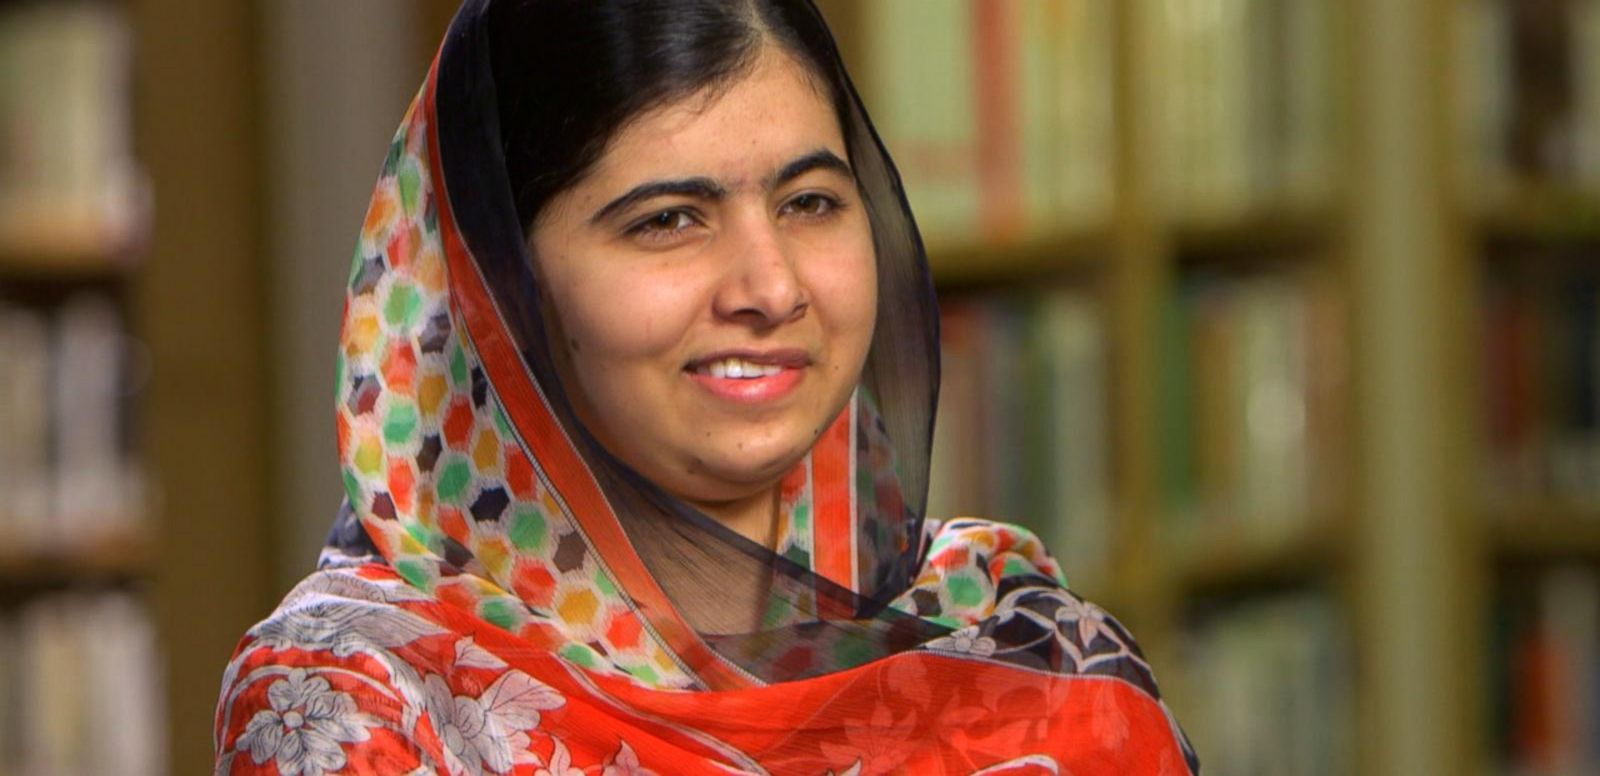 VIDEO: Malala Discusses the New Film 'He Named Me Malala'